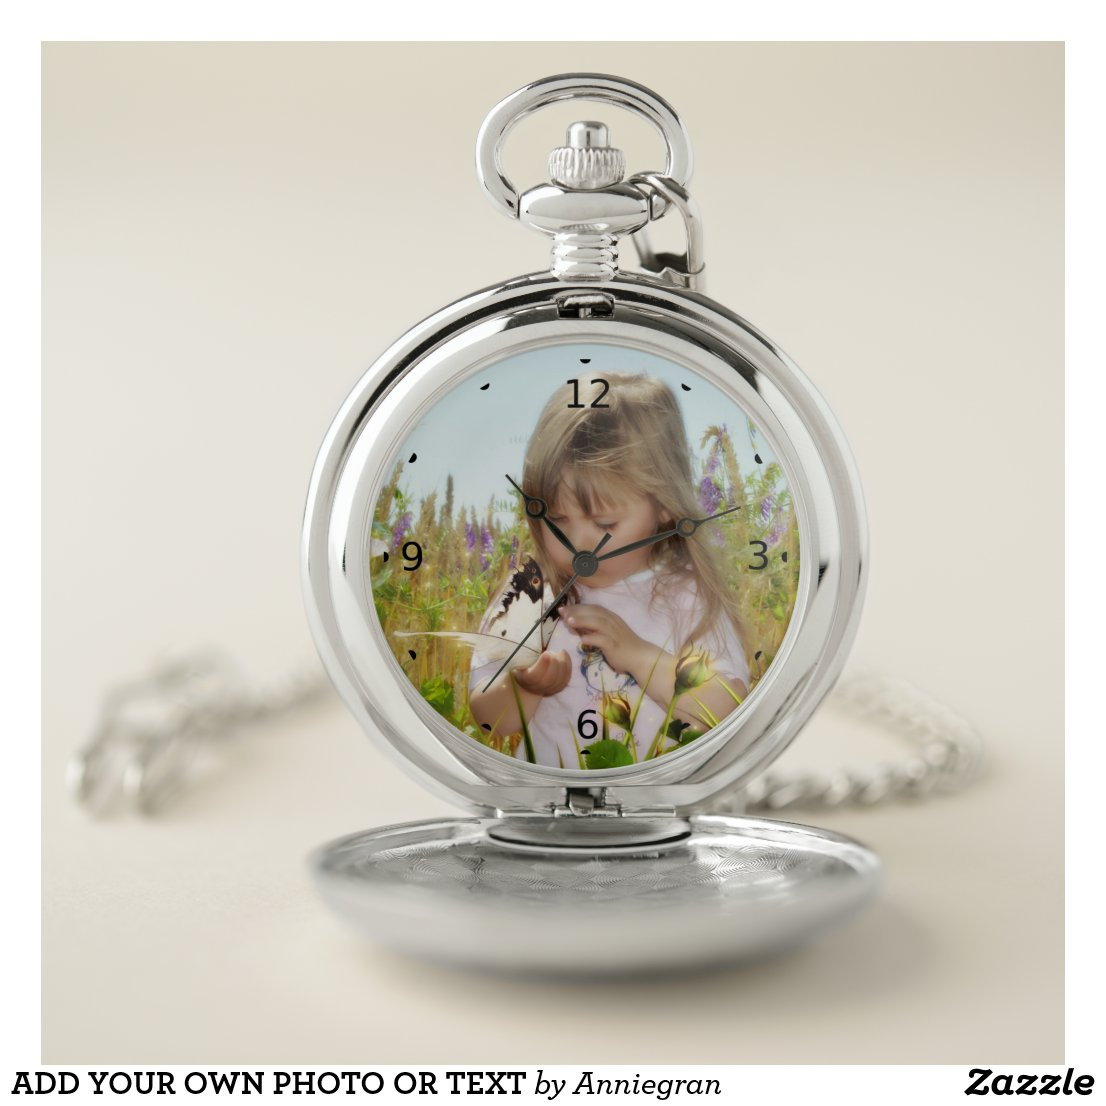 ADD YOUR OWN PHOTO OR TEXT POCKET WATCH Case Diameter: 2 inches Avlbl in Gold or Silver